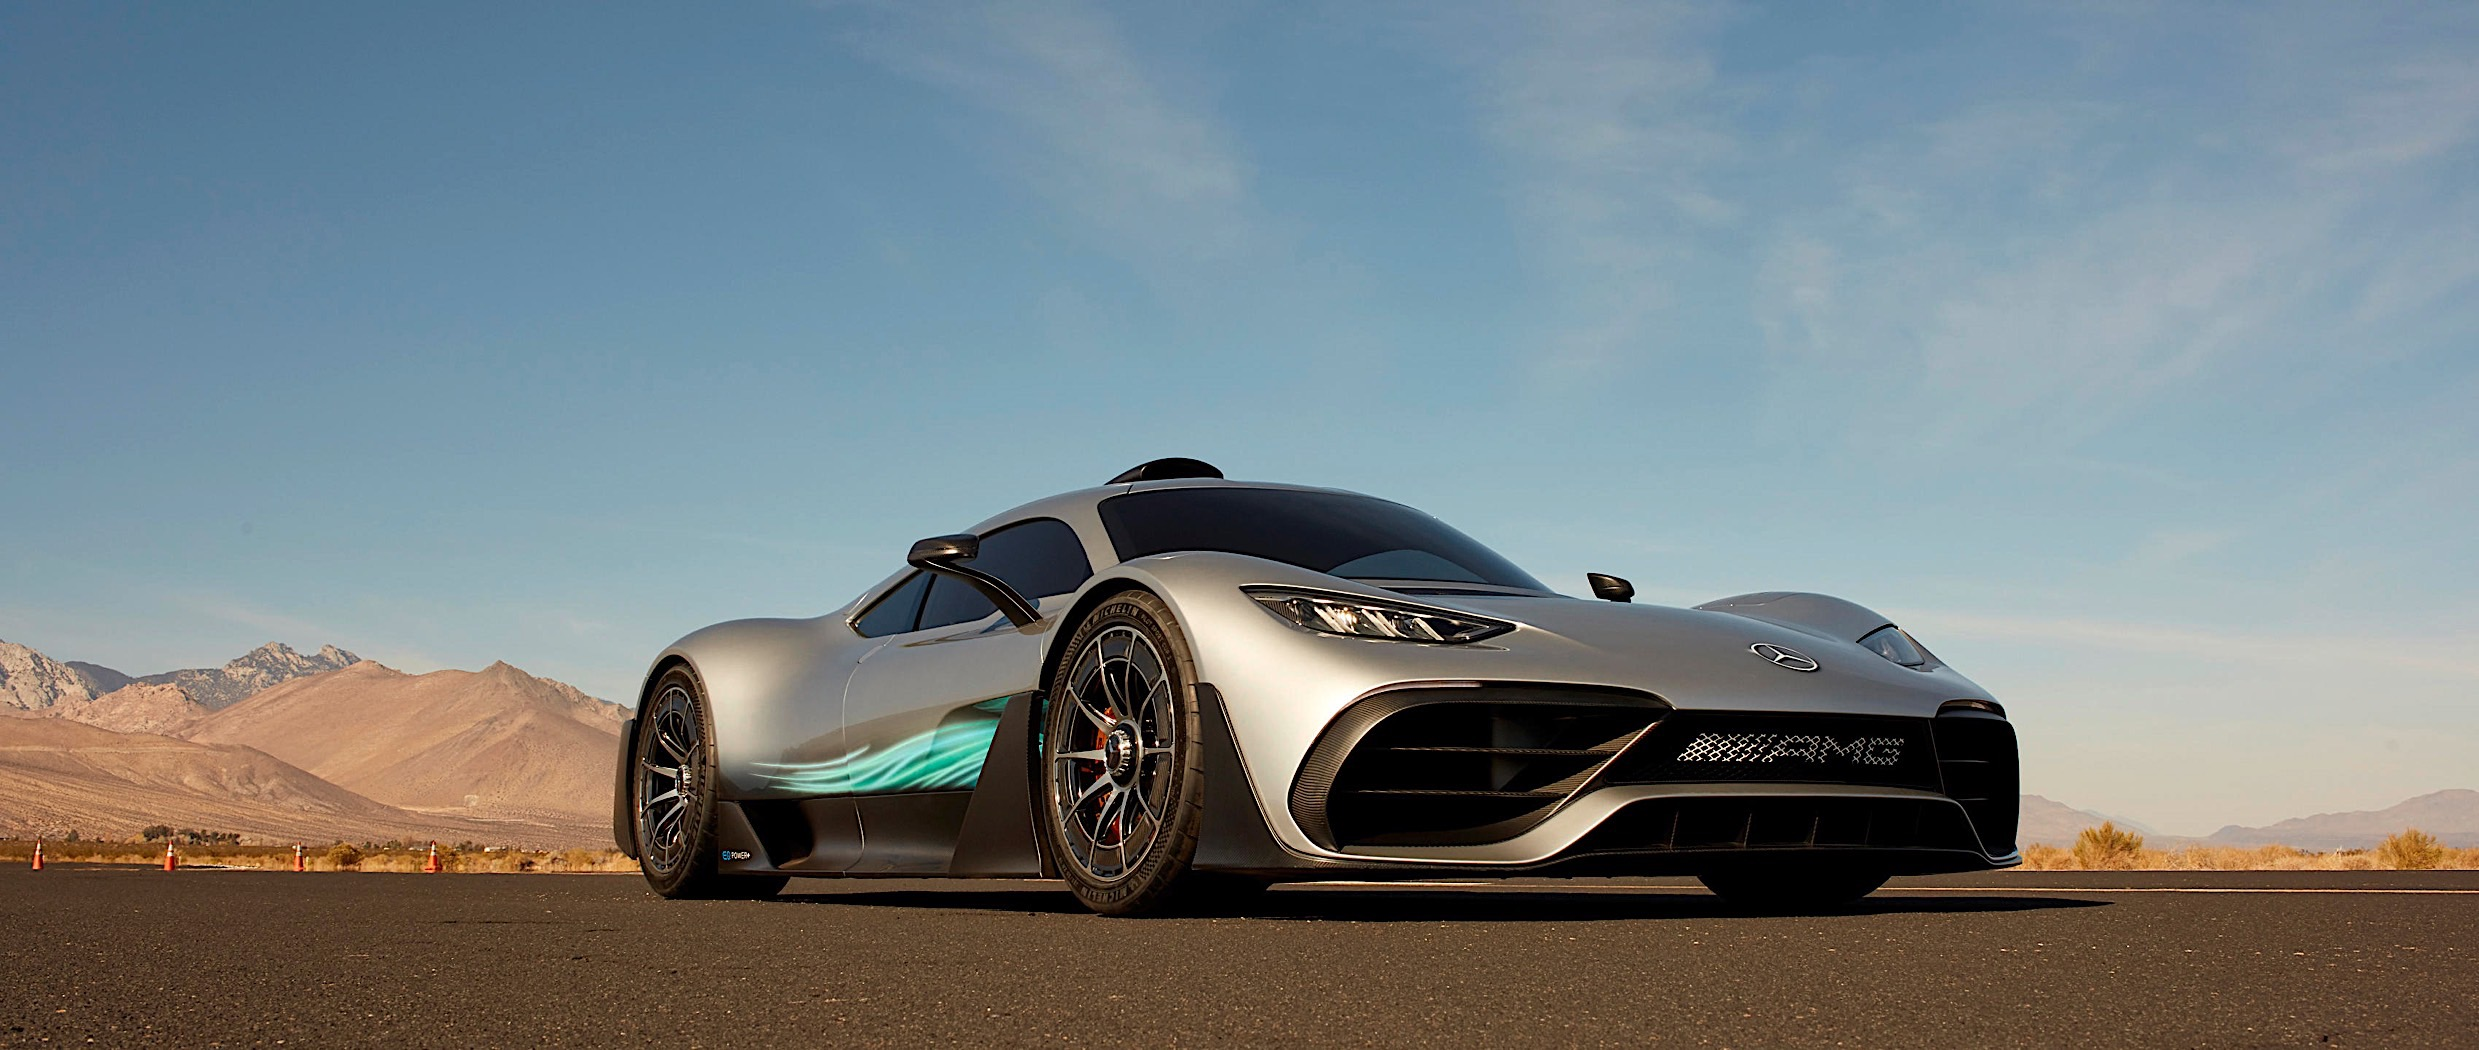 Mercedes Amg Hypercar >> Mercedes-AMG Project One Shines in New Wallpaper Gallery ...